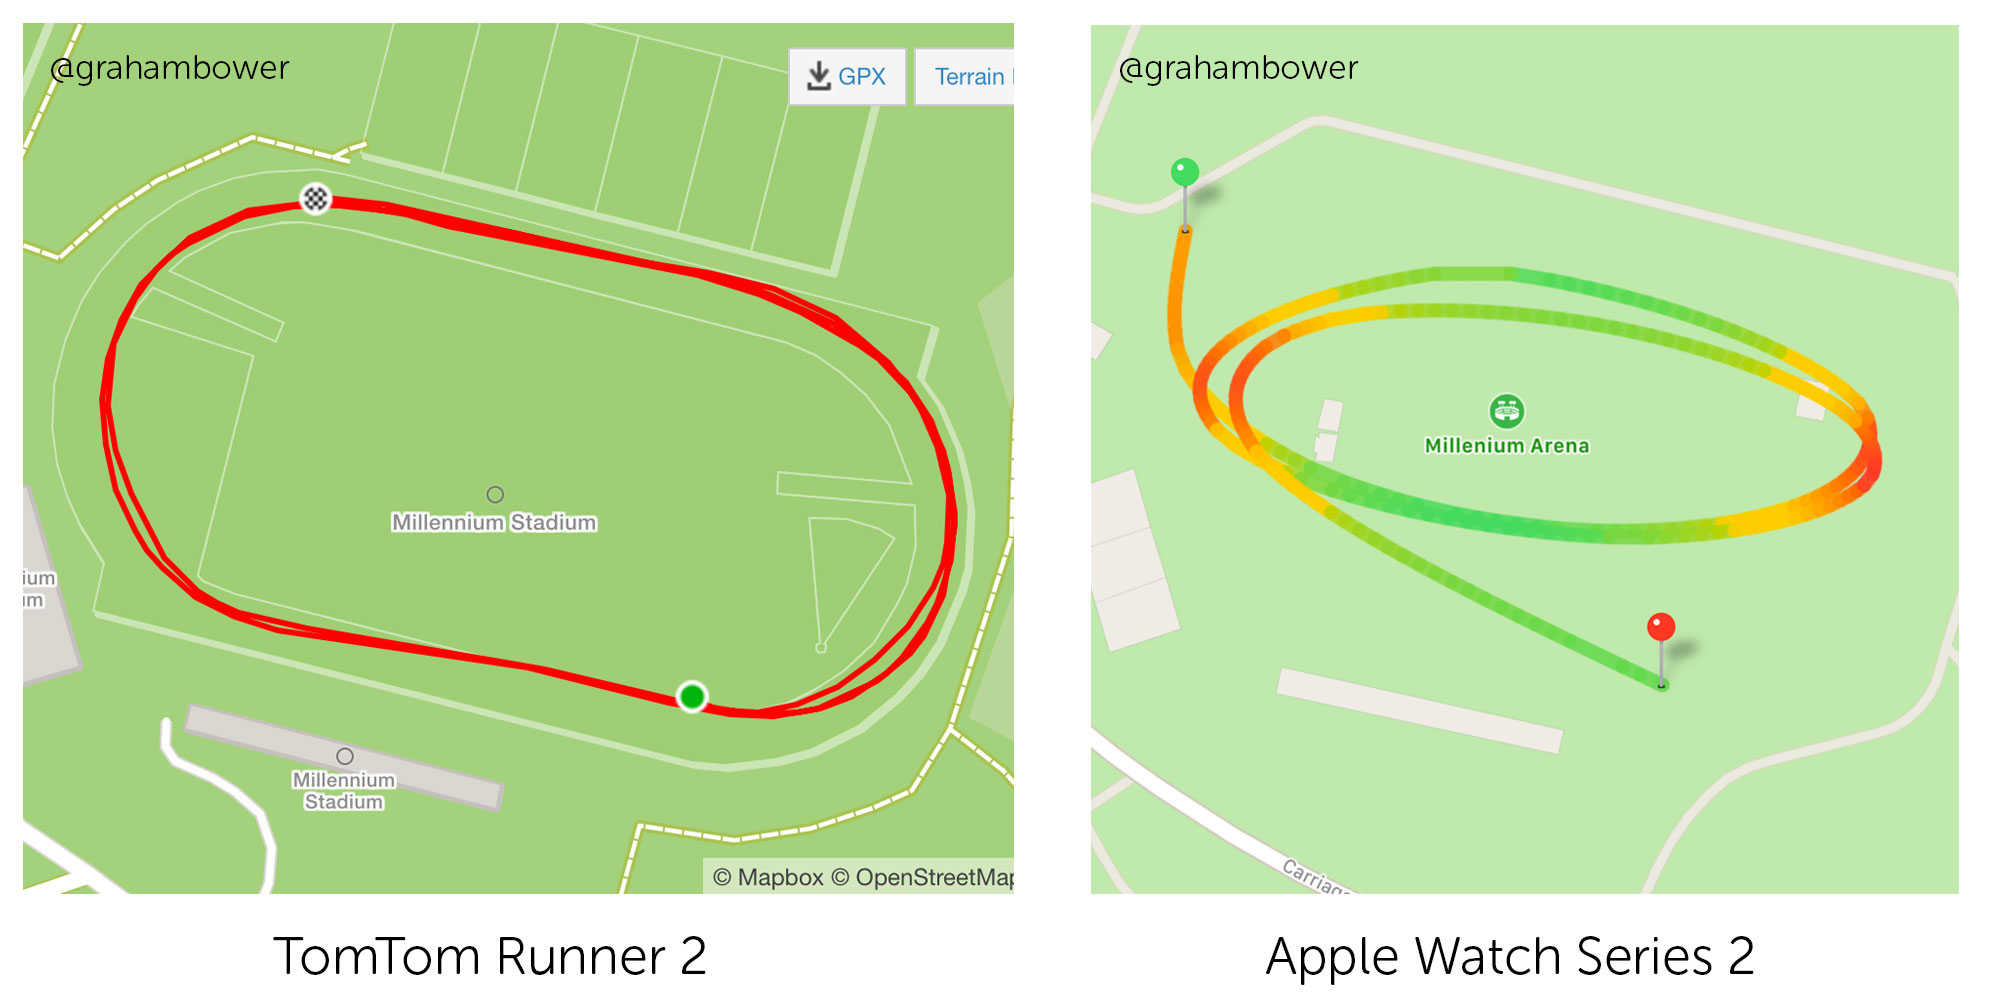 Apple Watch Series 2 couldn't keep up with TomTom when route mapping the running track